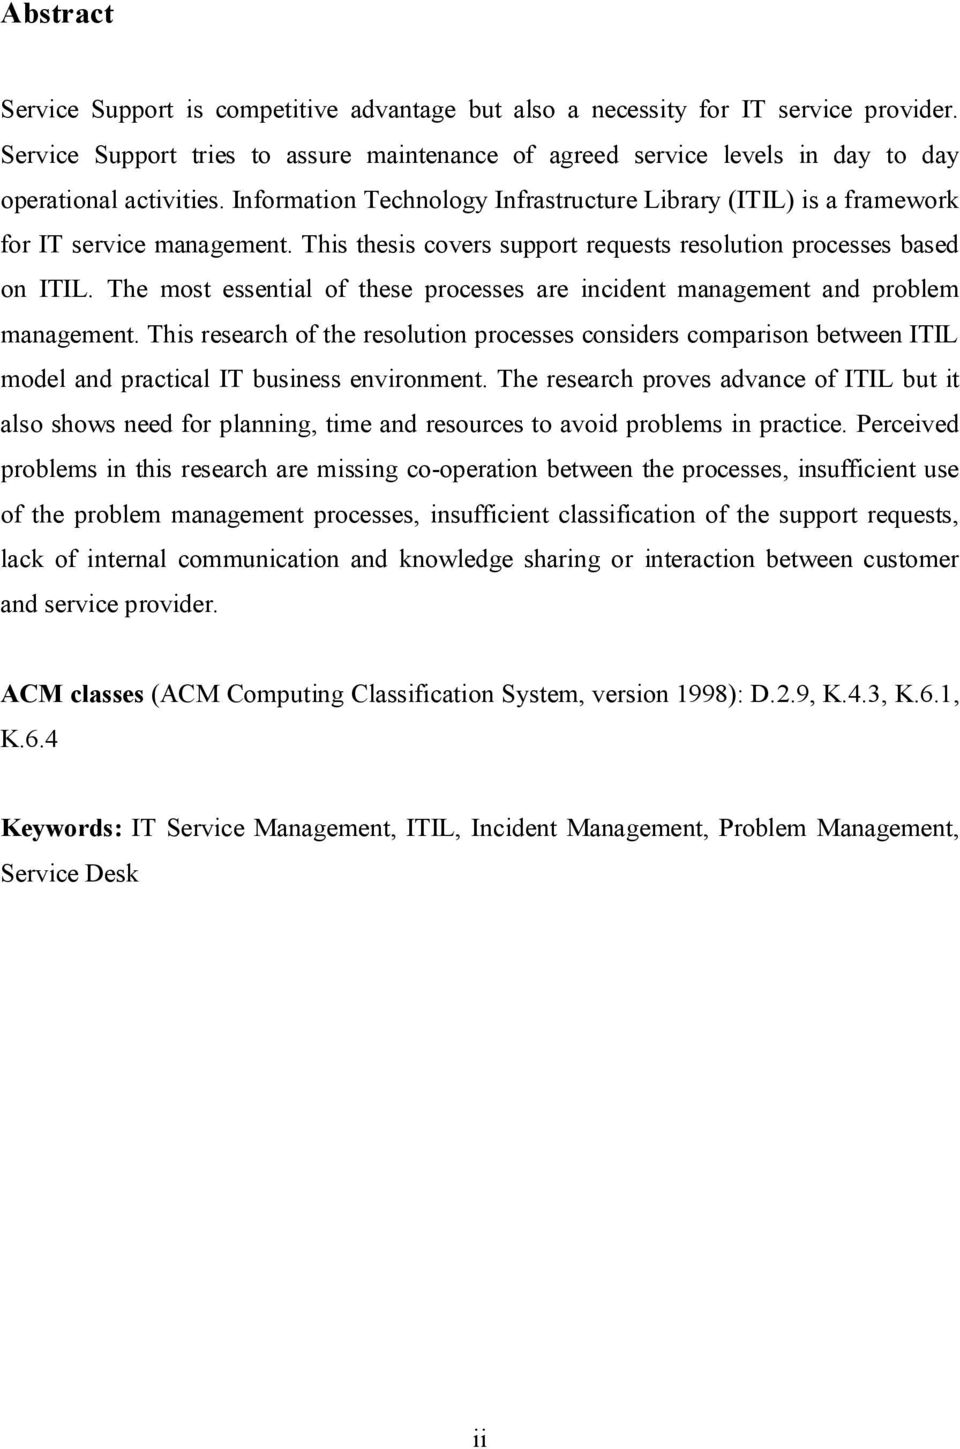 Information Technology Infrastructure Library (ITIL) is a framework for IT service management. This thesis covers support requests resolution processes based on ITIL.